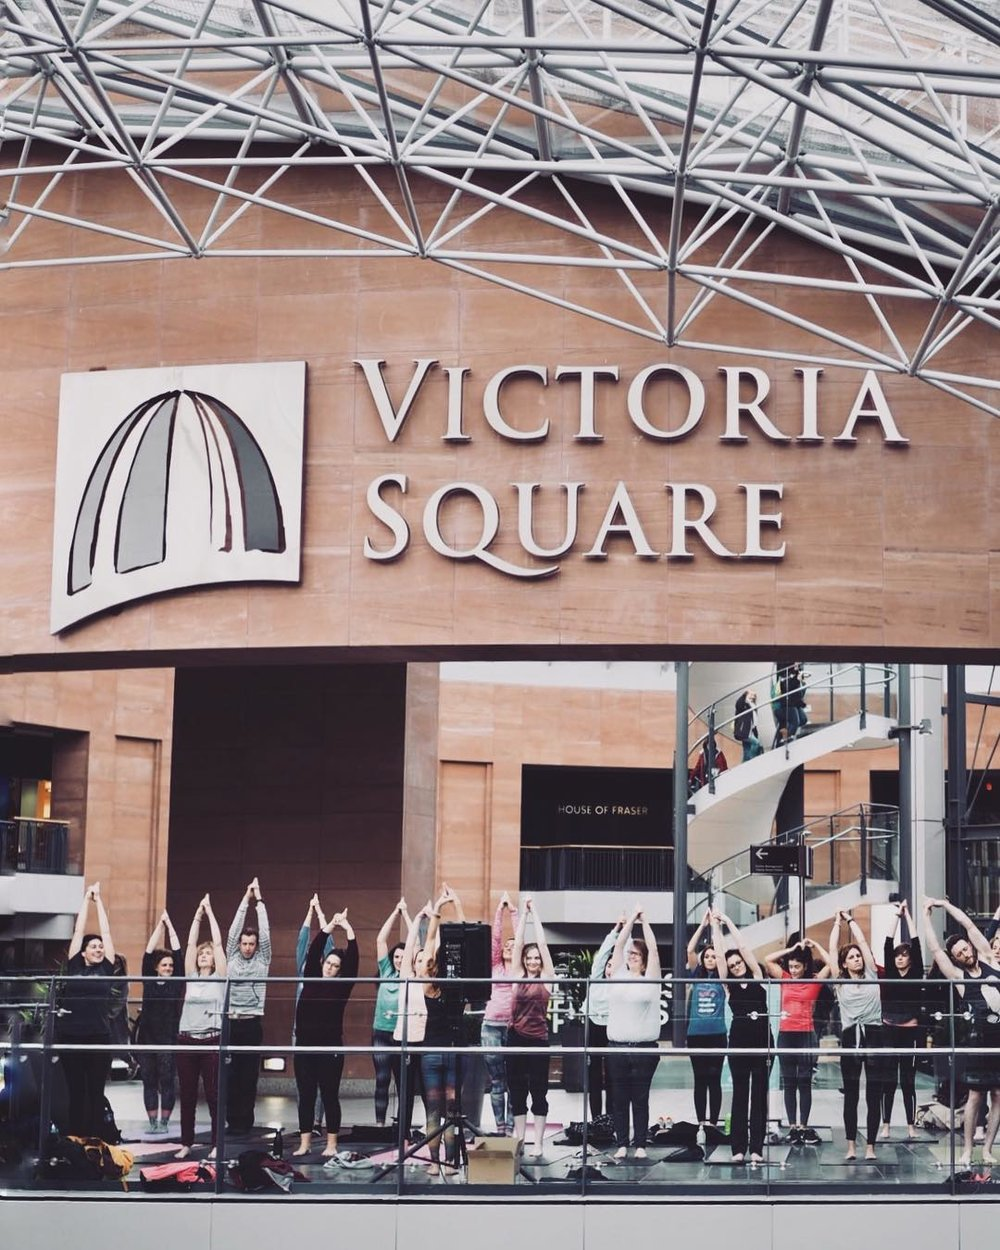 Flow Yoga Victoria Square Culture Night Belfast Fitness Belfast Photo by Stephen Johnston insta spjplanning.jpg